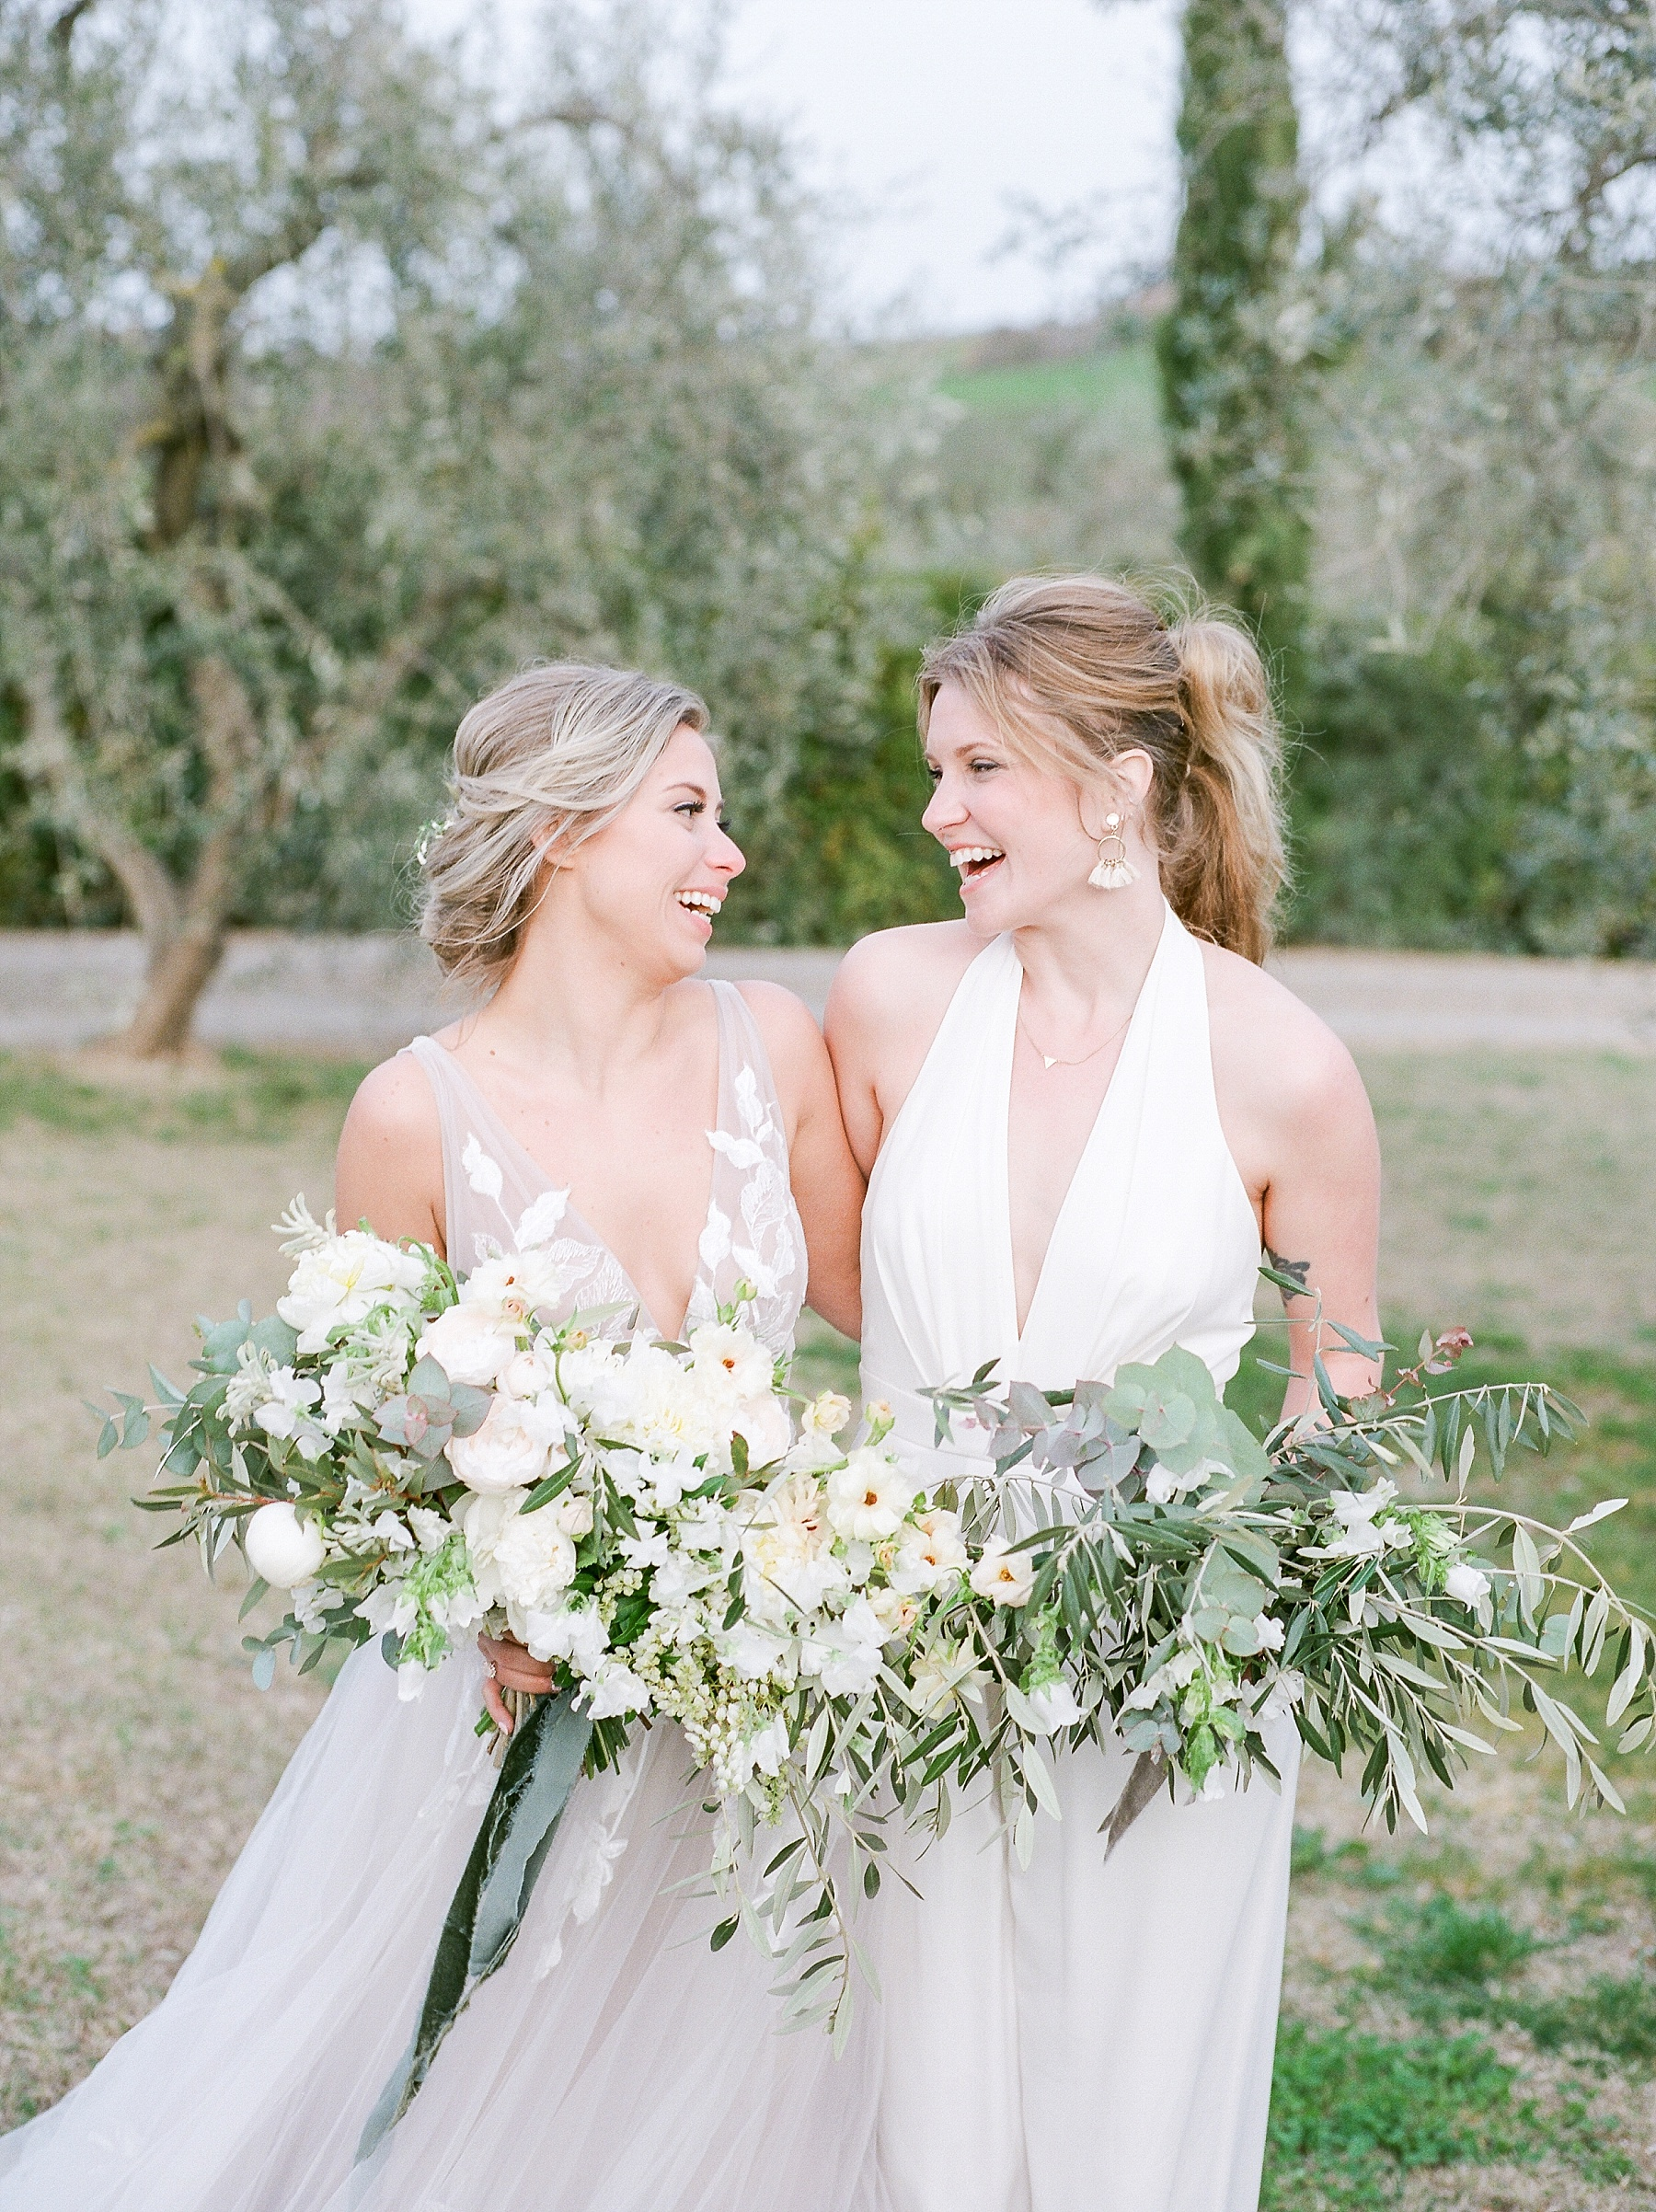 All White Destination Wedding in the Hills of Tuscany Italy at Estate Borgo Petrognano by Kelsi Kliethermes Photography_0053.jpg